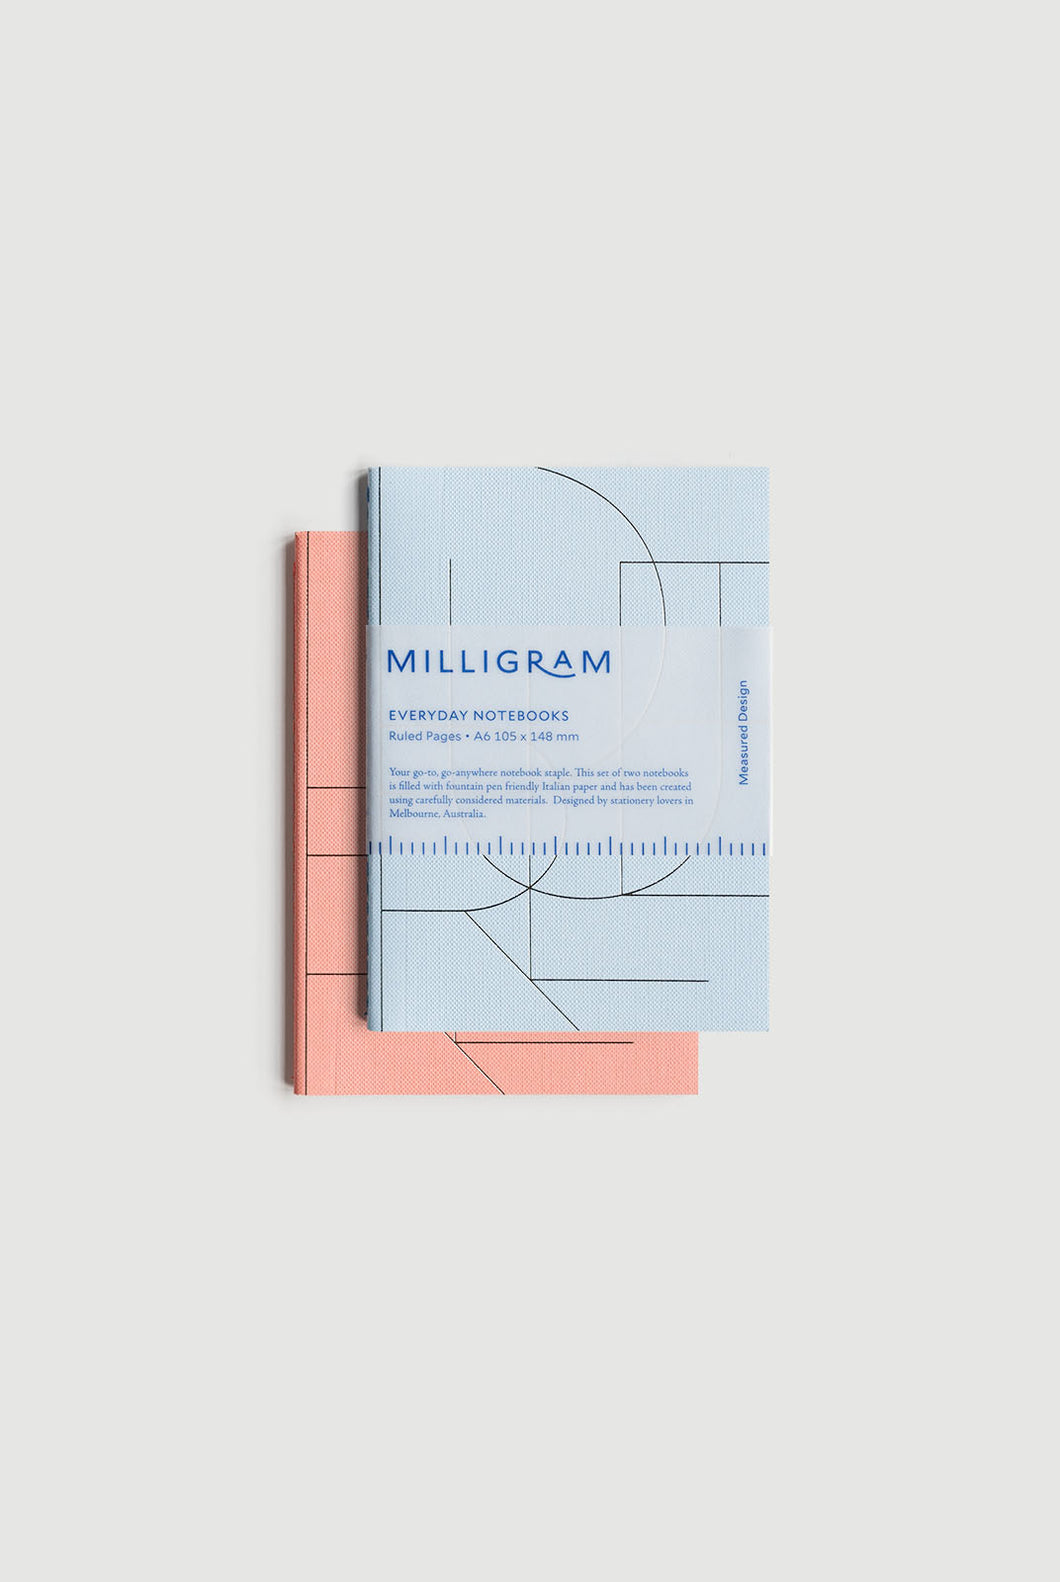 Milligram - Everyday Notebook - Set of 2 - Ruled - A6 (15 x 10cm) - Peach & Blue